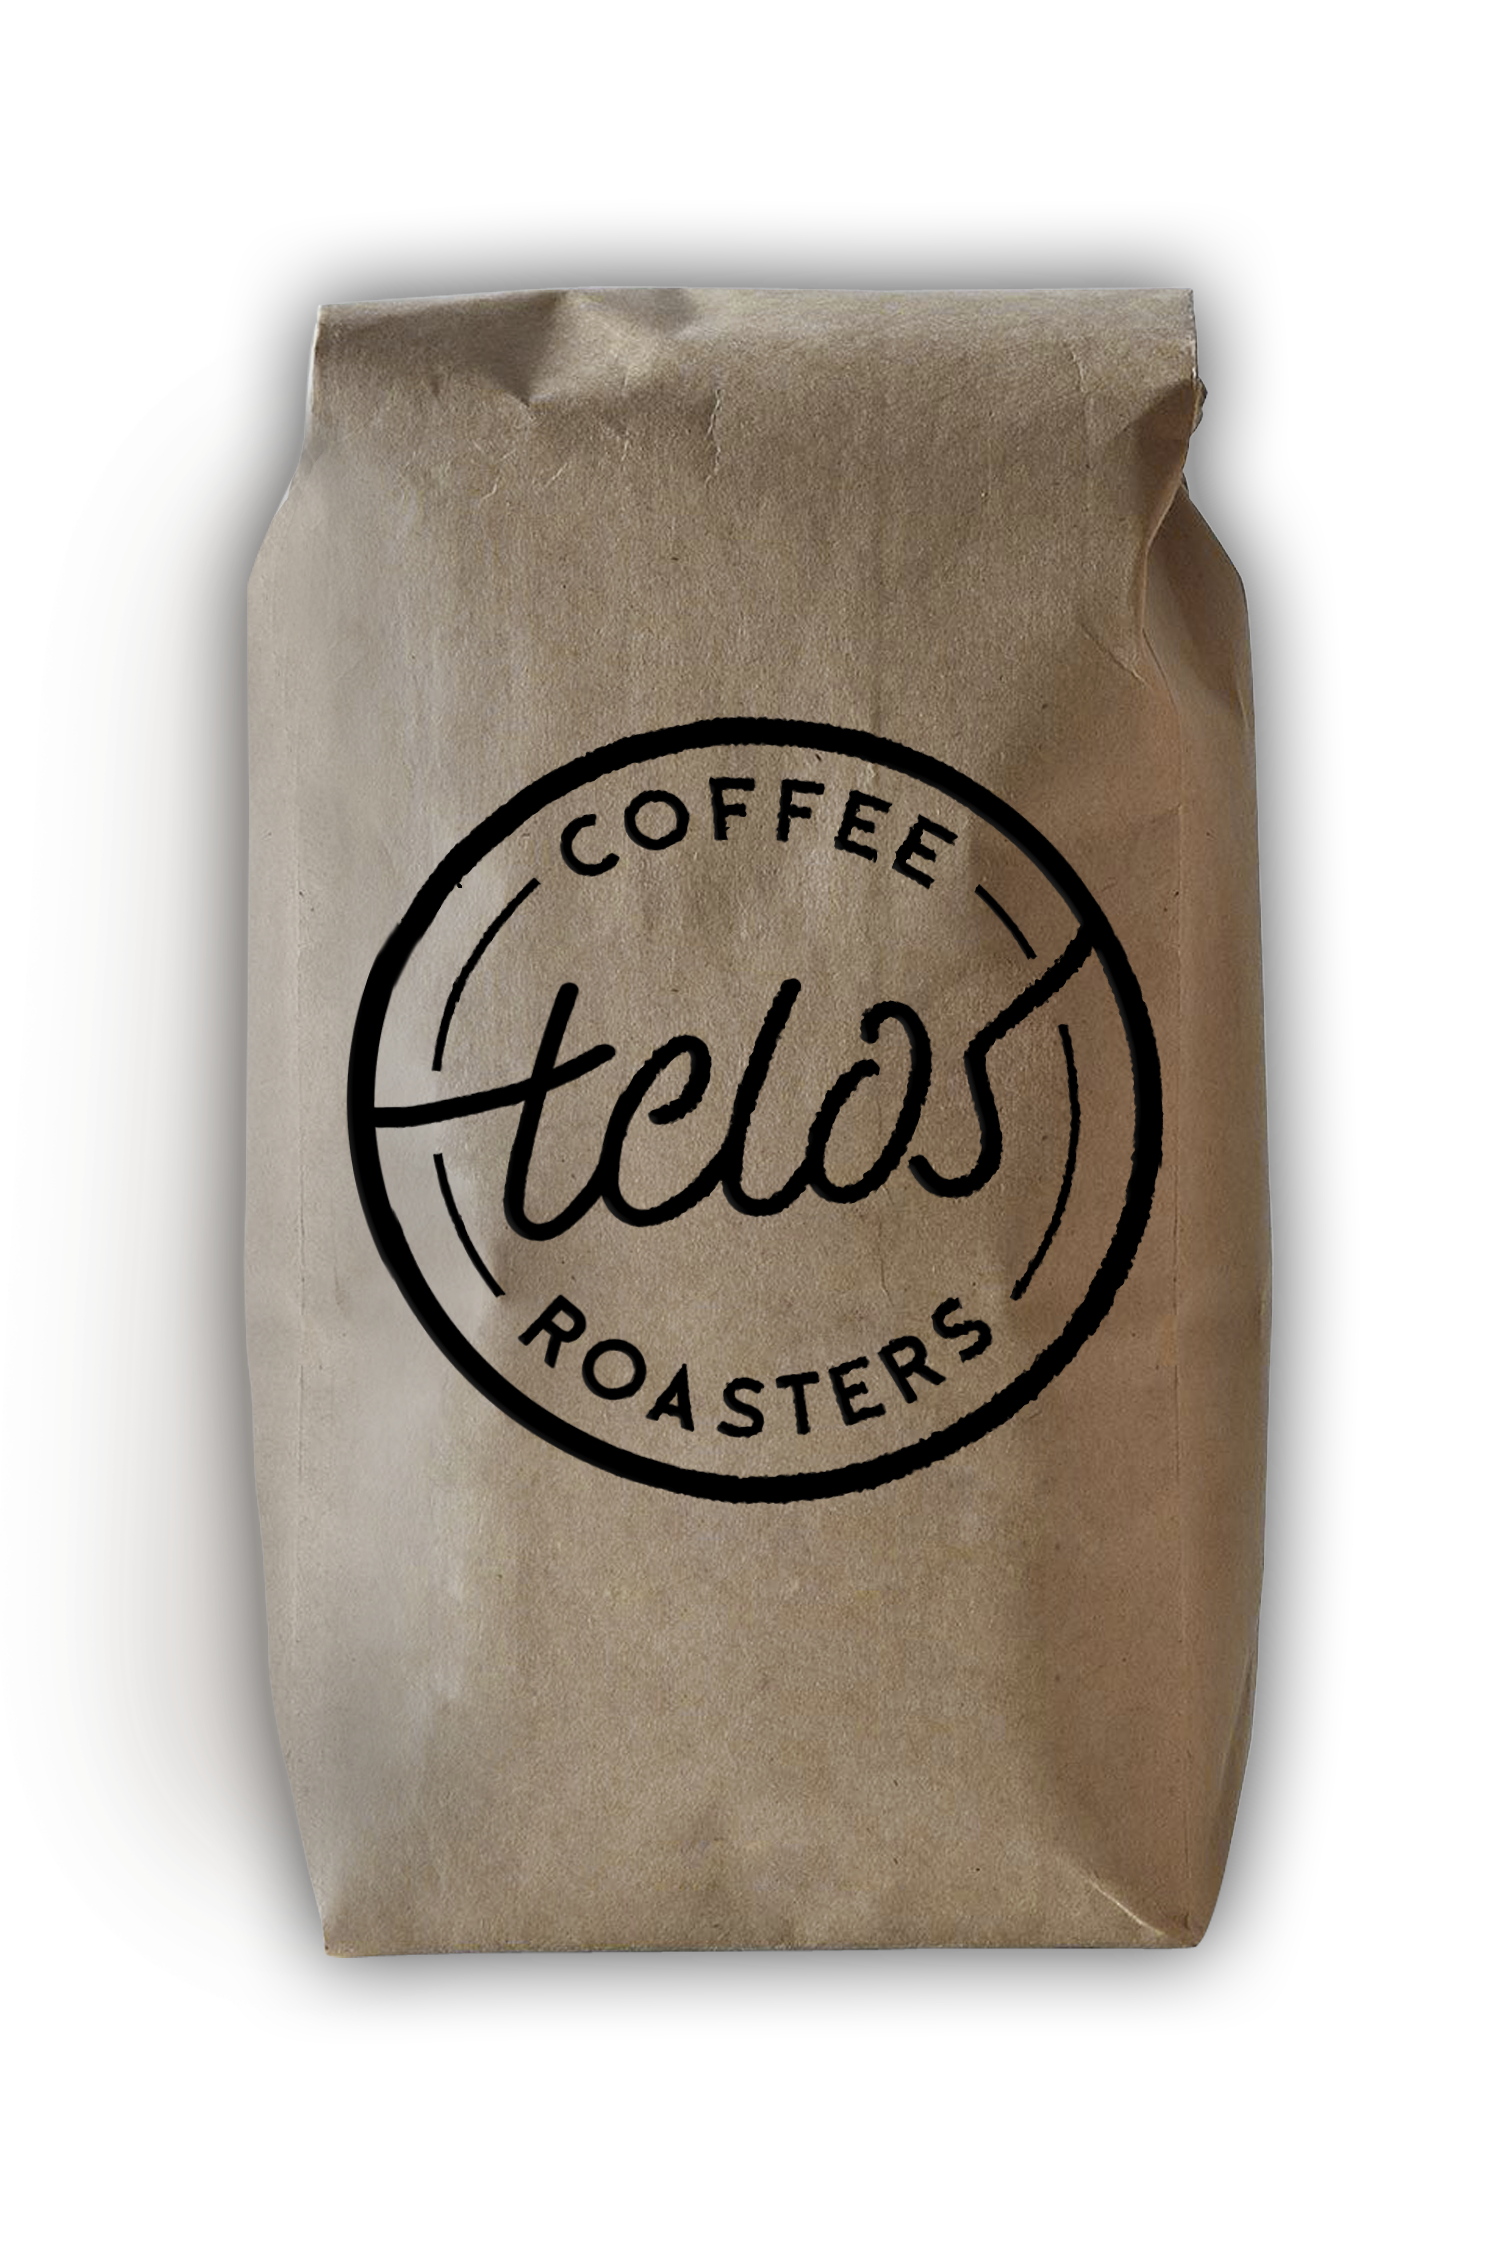 Coffee Bag Mockup with shadow.png